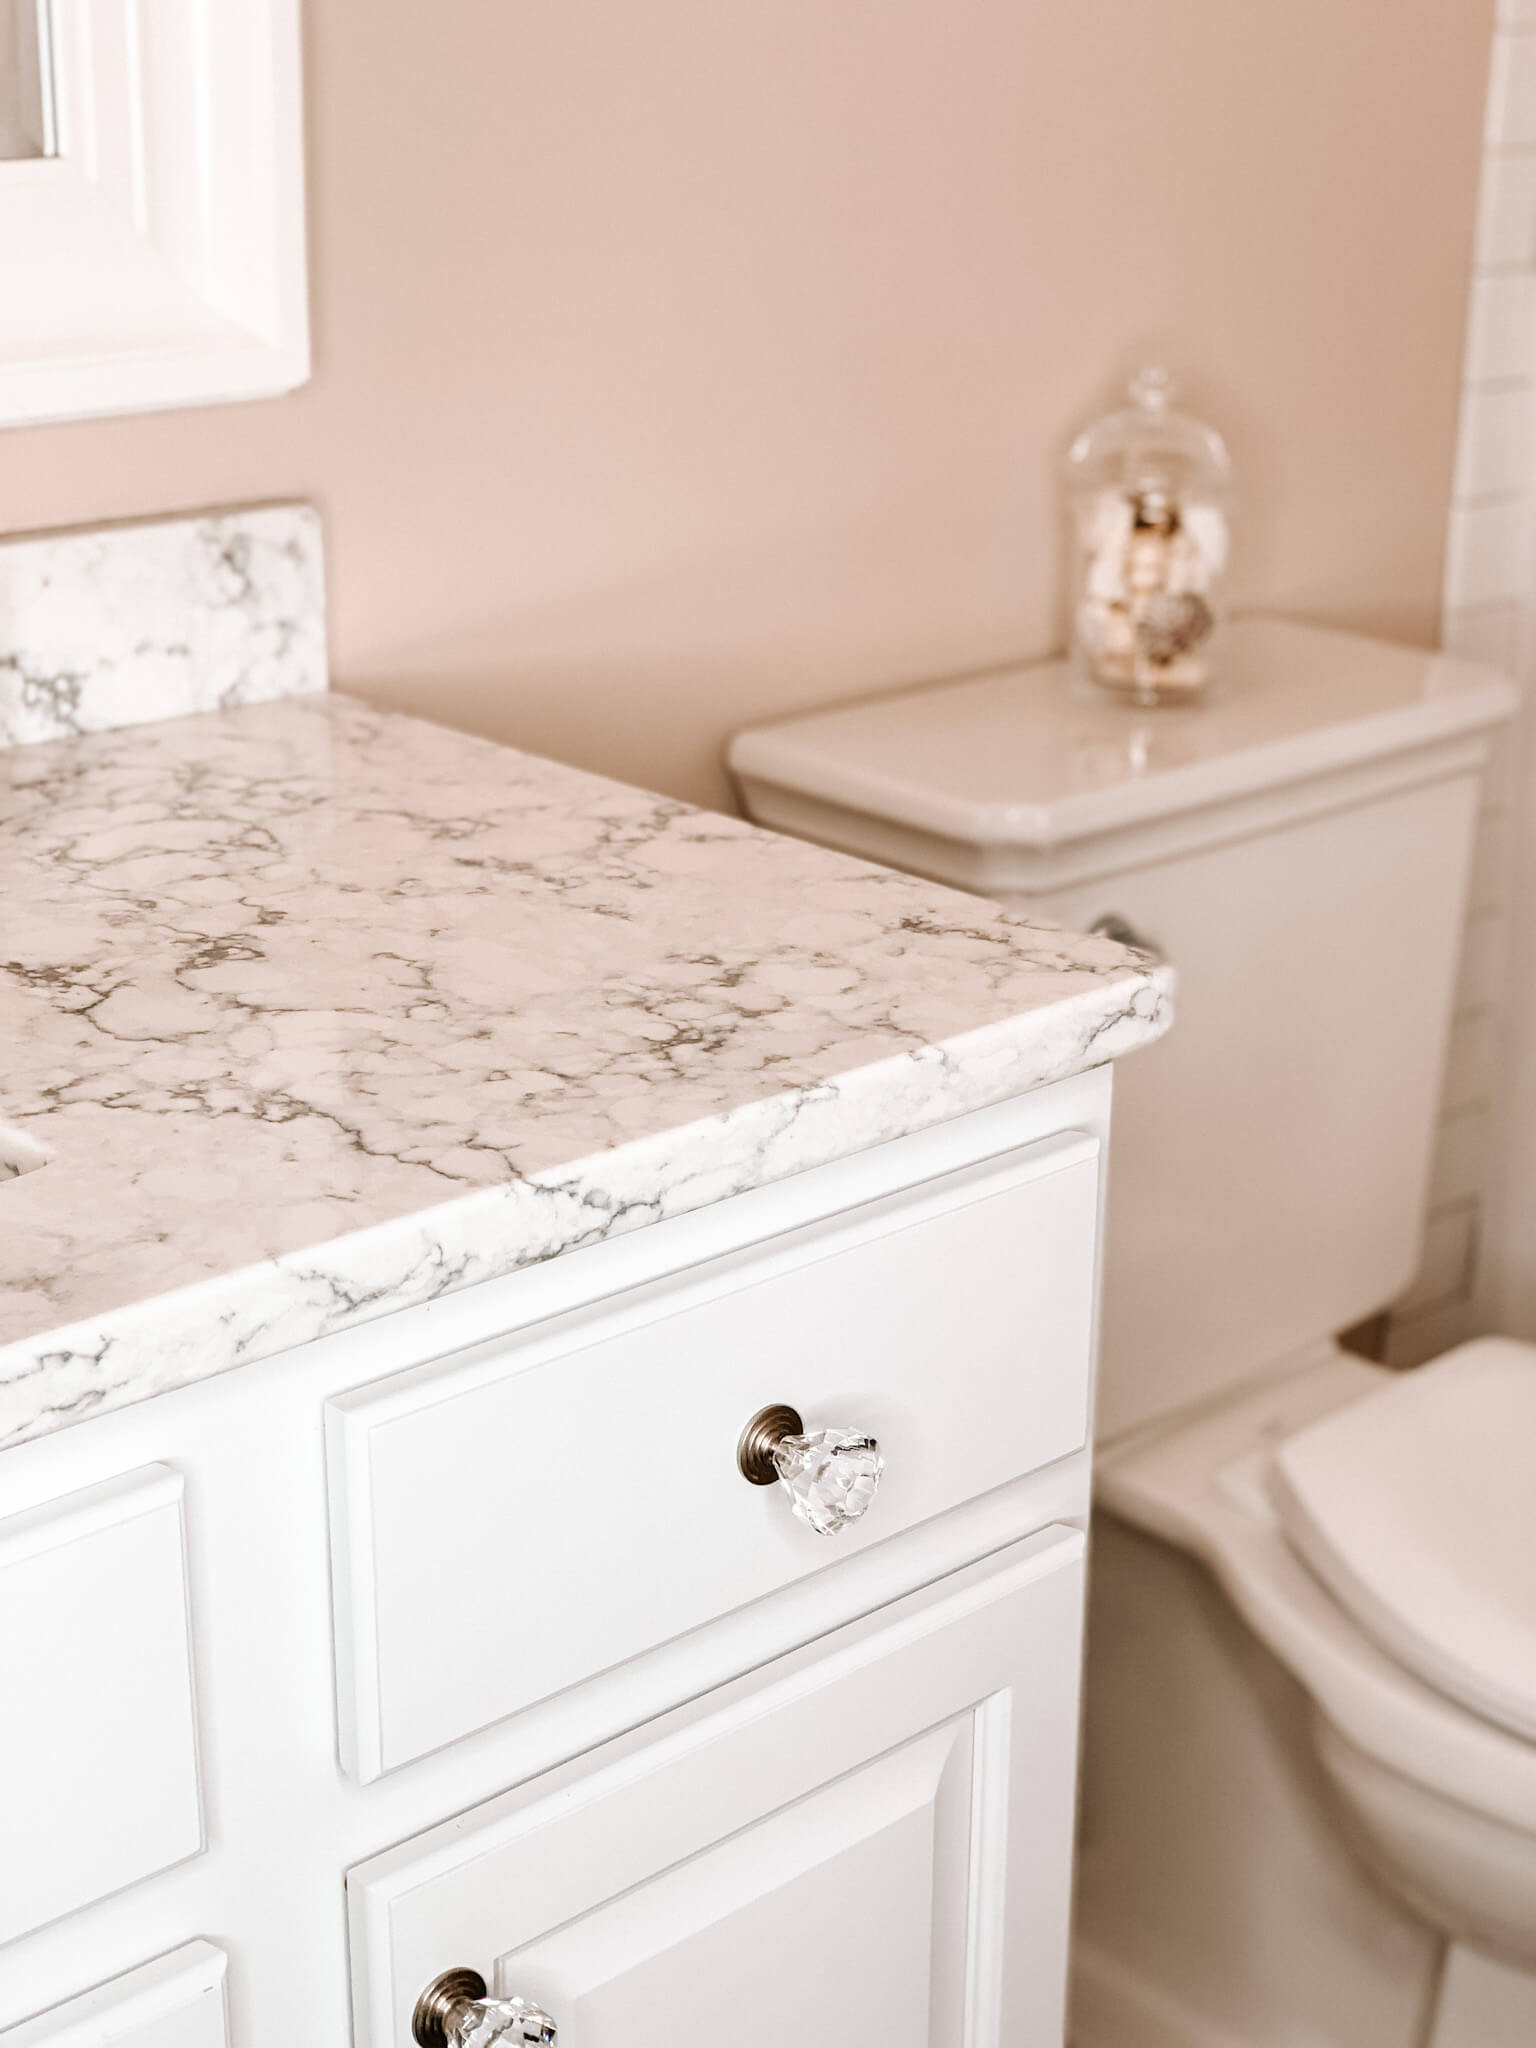 The Ins and Outs of Vanity Countertops